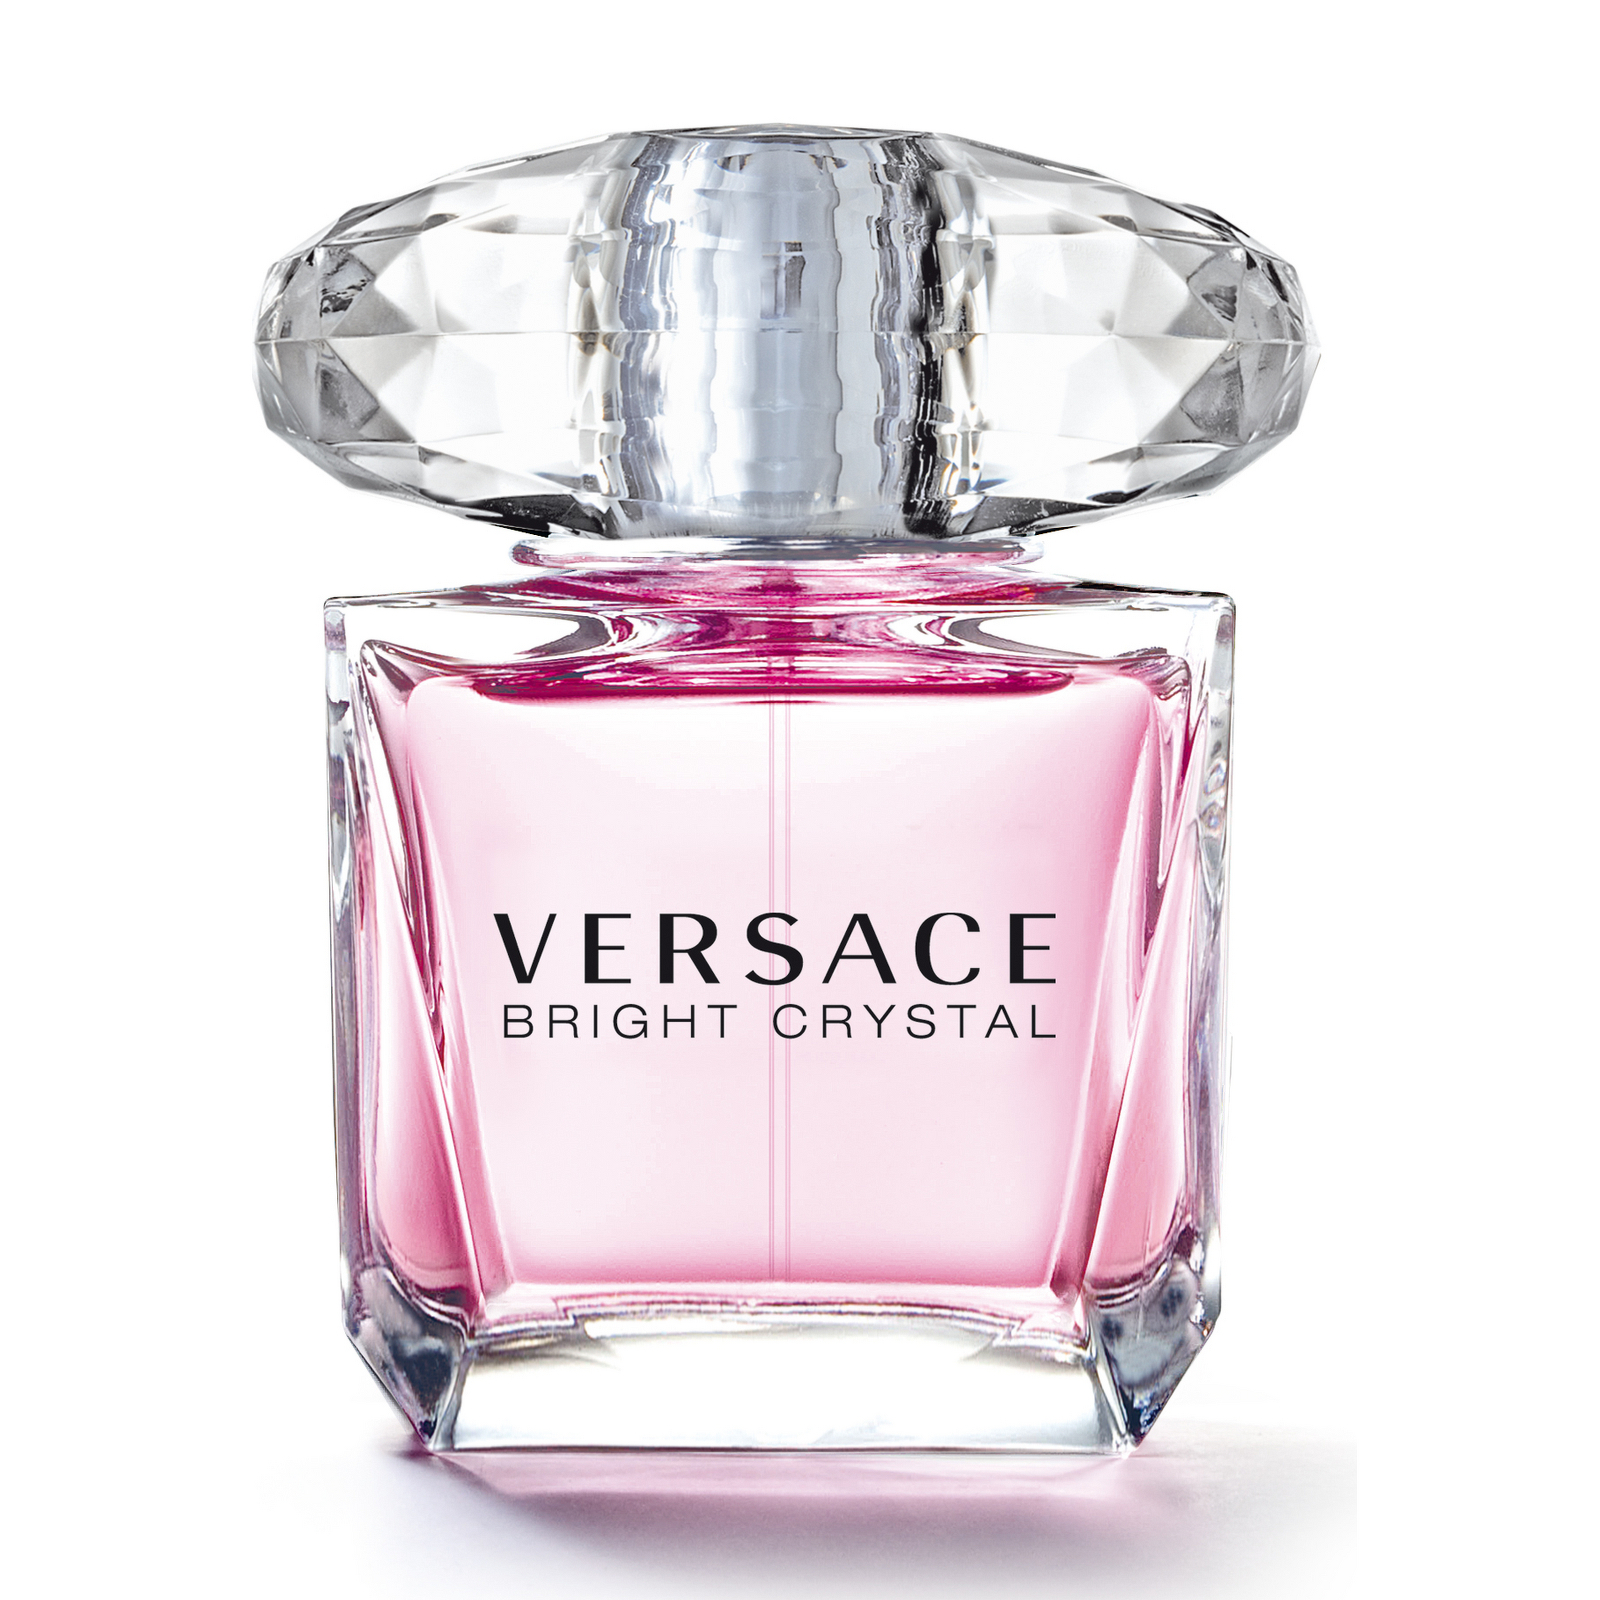 A 200ml bottle of Versace Bright Crystal is just £5 - today only!